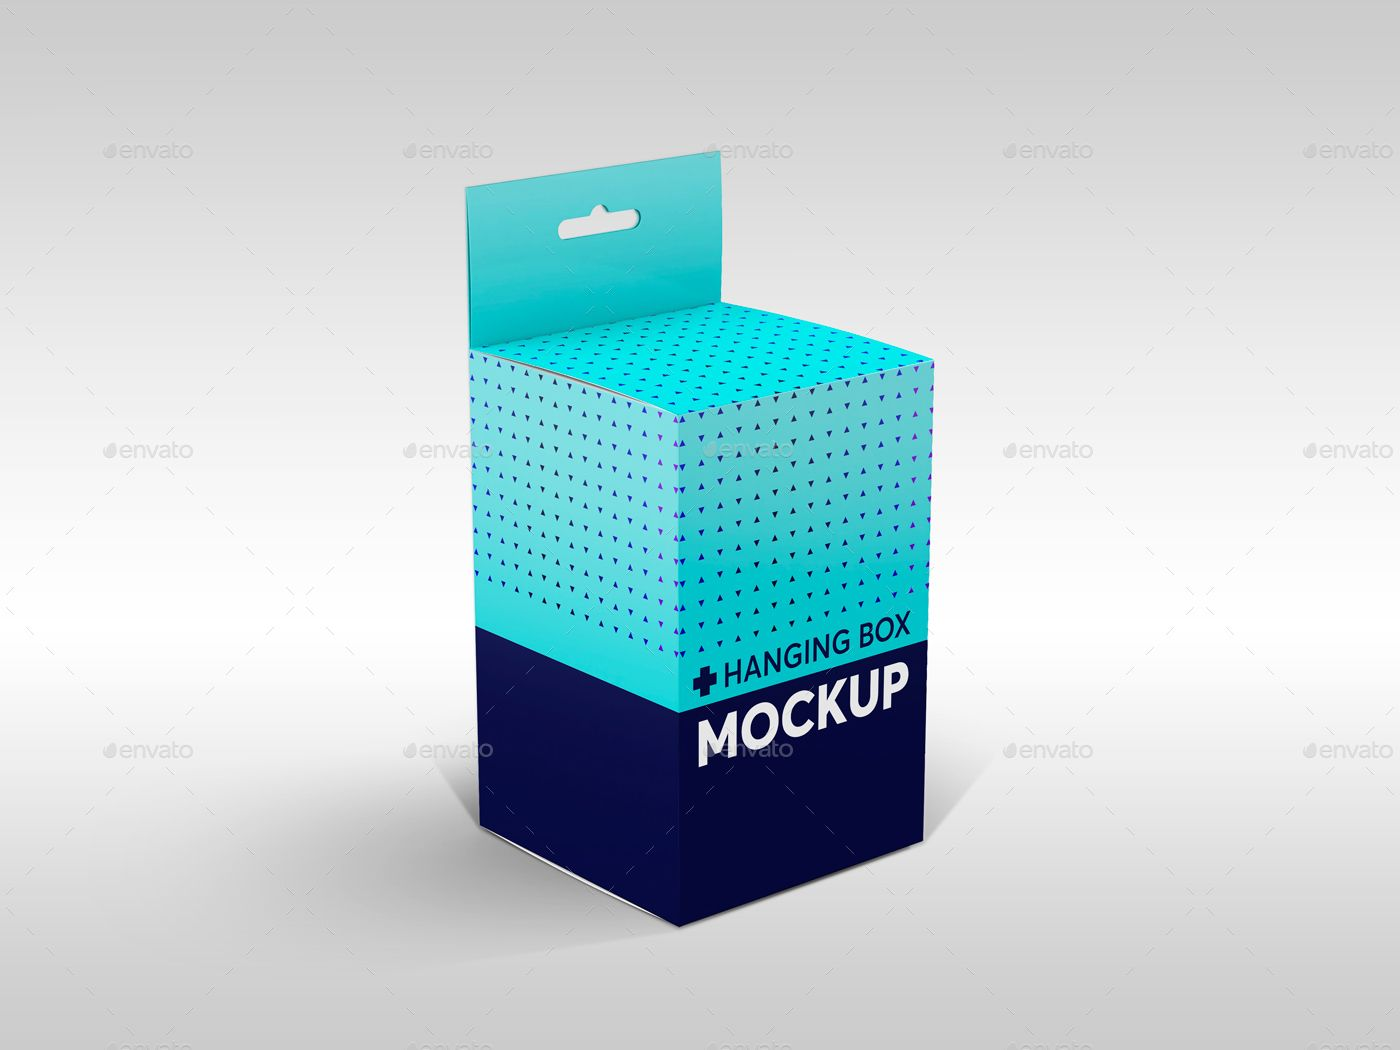 Download Hanging Square Box Mockups V 2 With Images Box Mockup Graphic Design Layouts Box Packaging Design